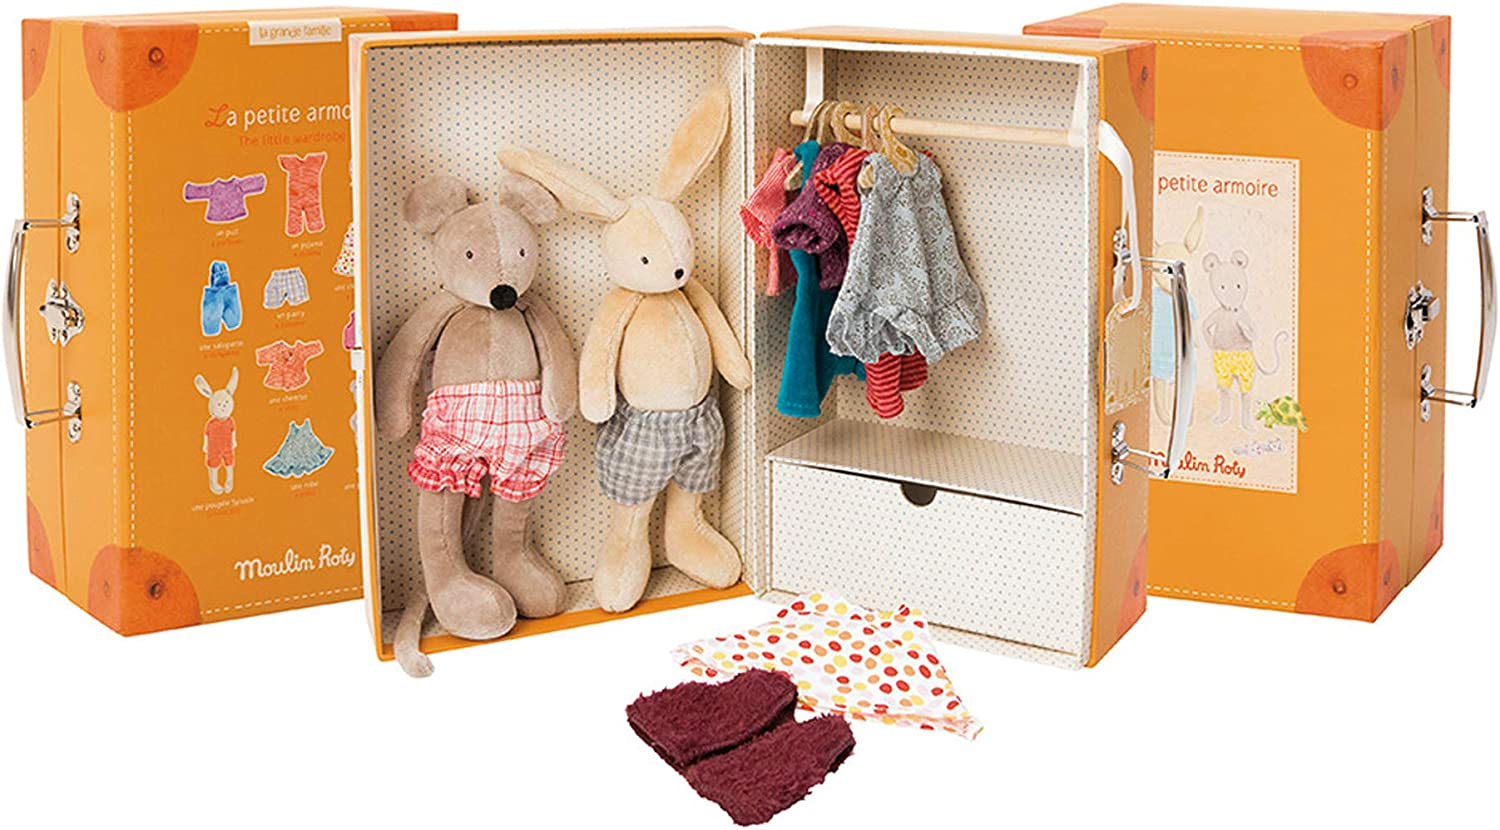 Moulin Roty La Grande Famille The Little Wardrobe Suitcase 71yufaTFZYLSL1500_